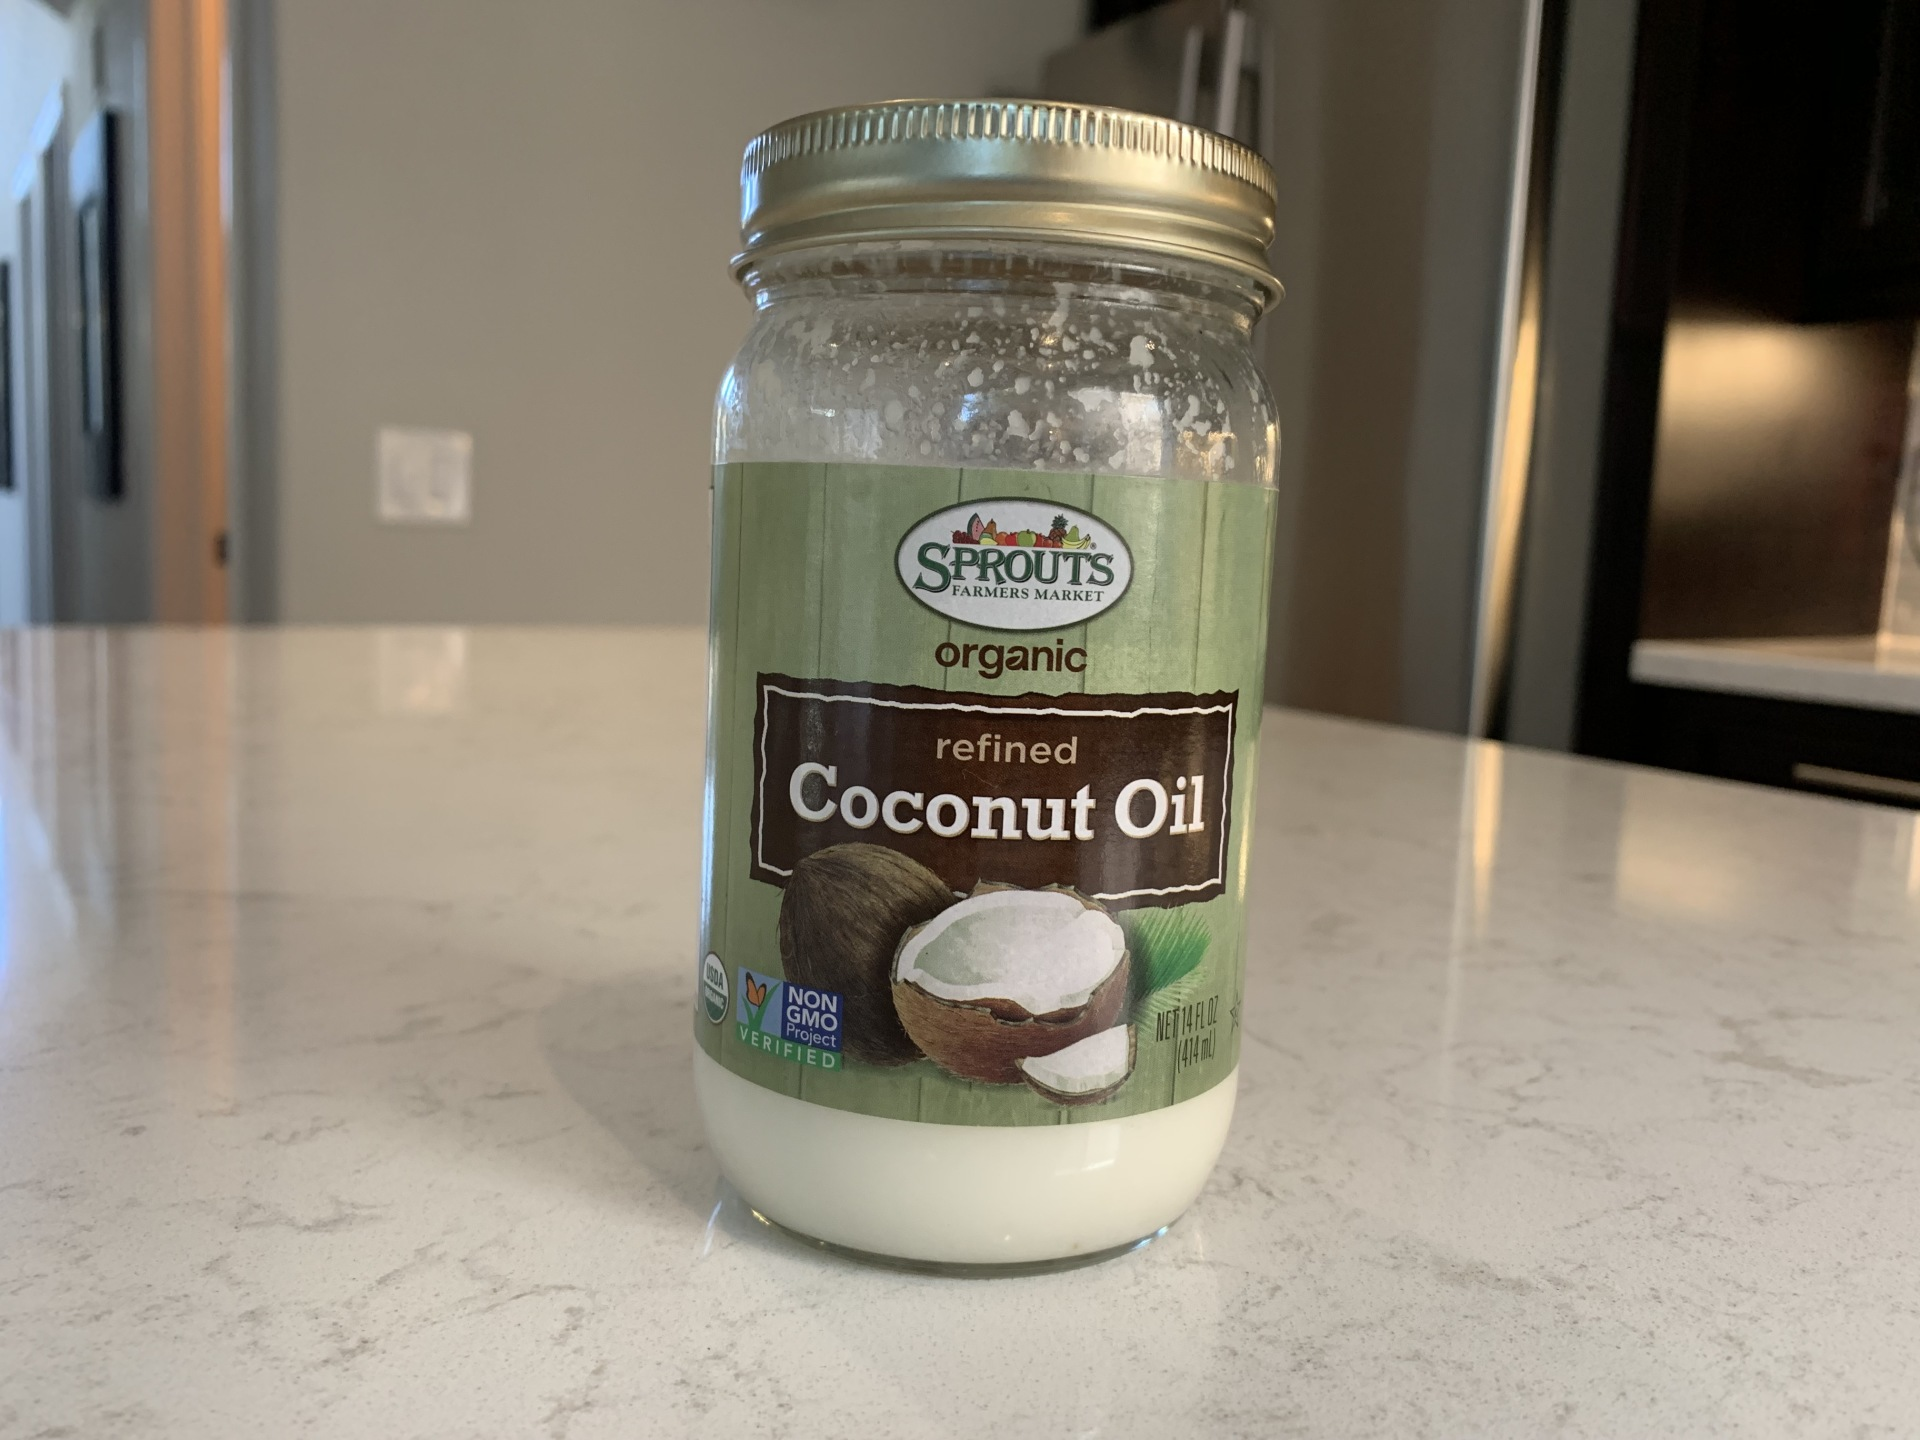 Day 26 - Coconut Oil - Super Food or Super Villain?